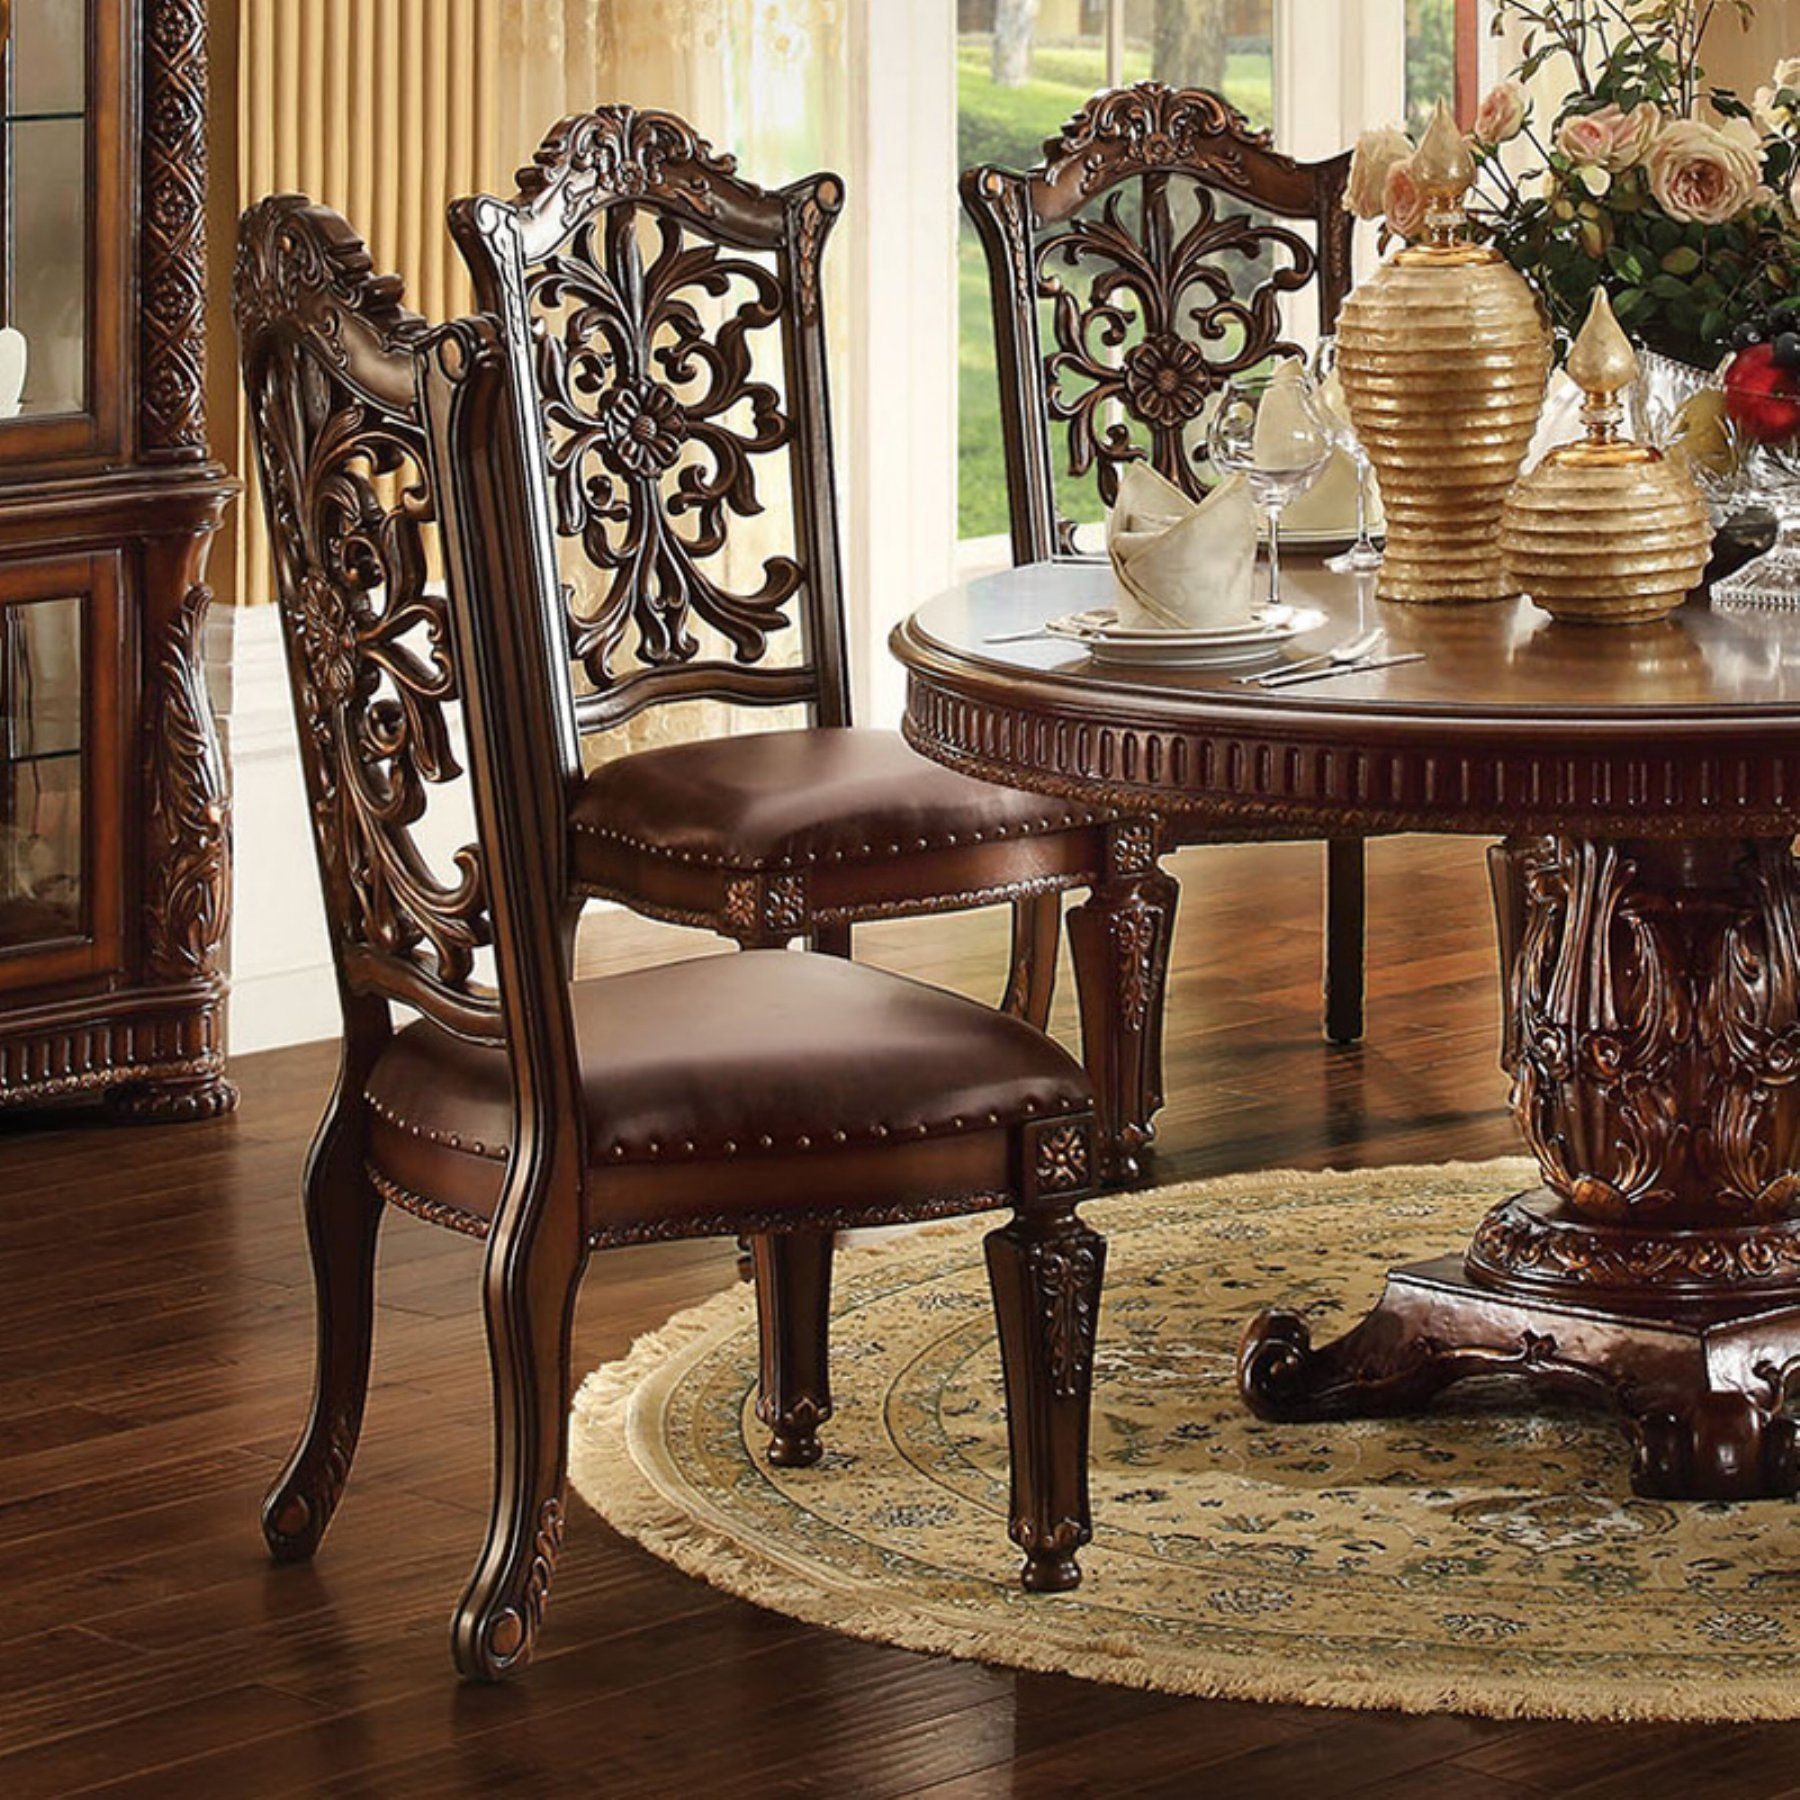 Acme Furniture Vendome Ornate Dining Side Chair Set Of 2 Side Chairs Dining Acme Furniture Round Pedestal Dining Table